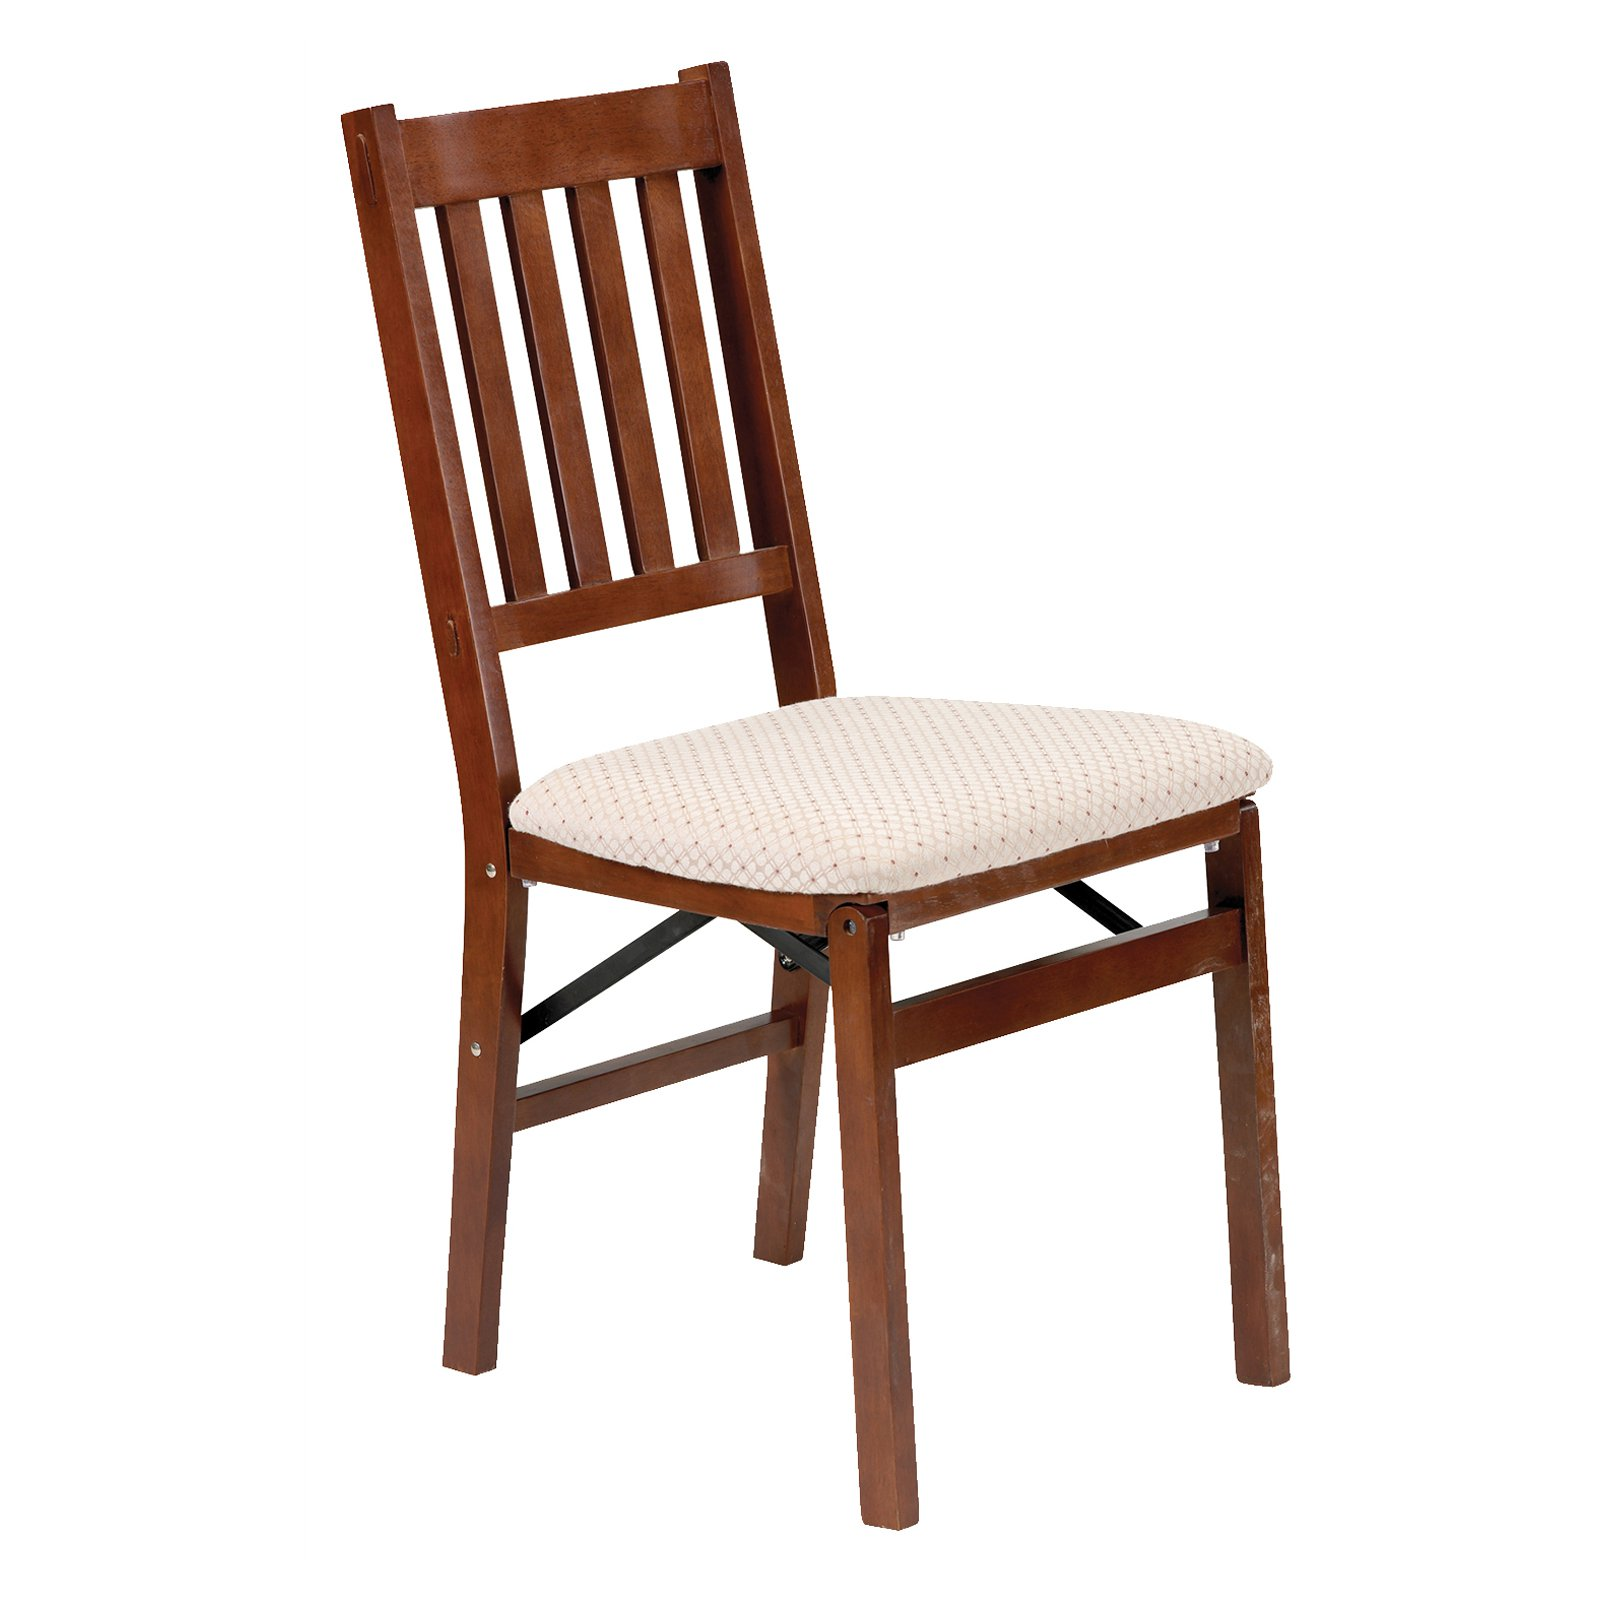 Arts and Craft Harwood folding chair with blush upholstery - Light Cherry